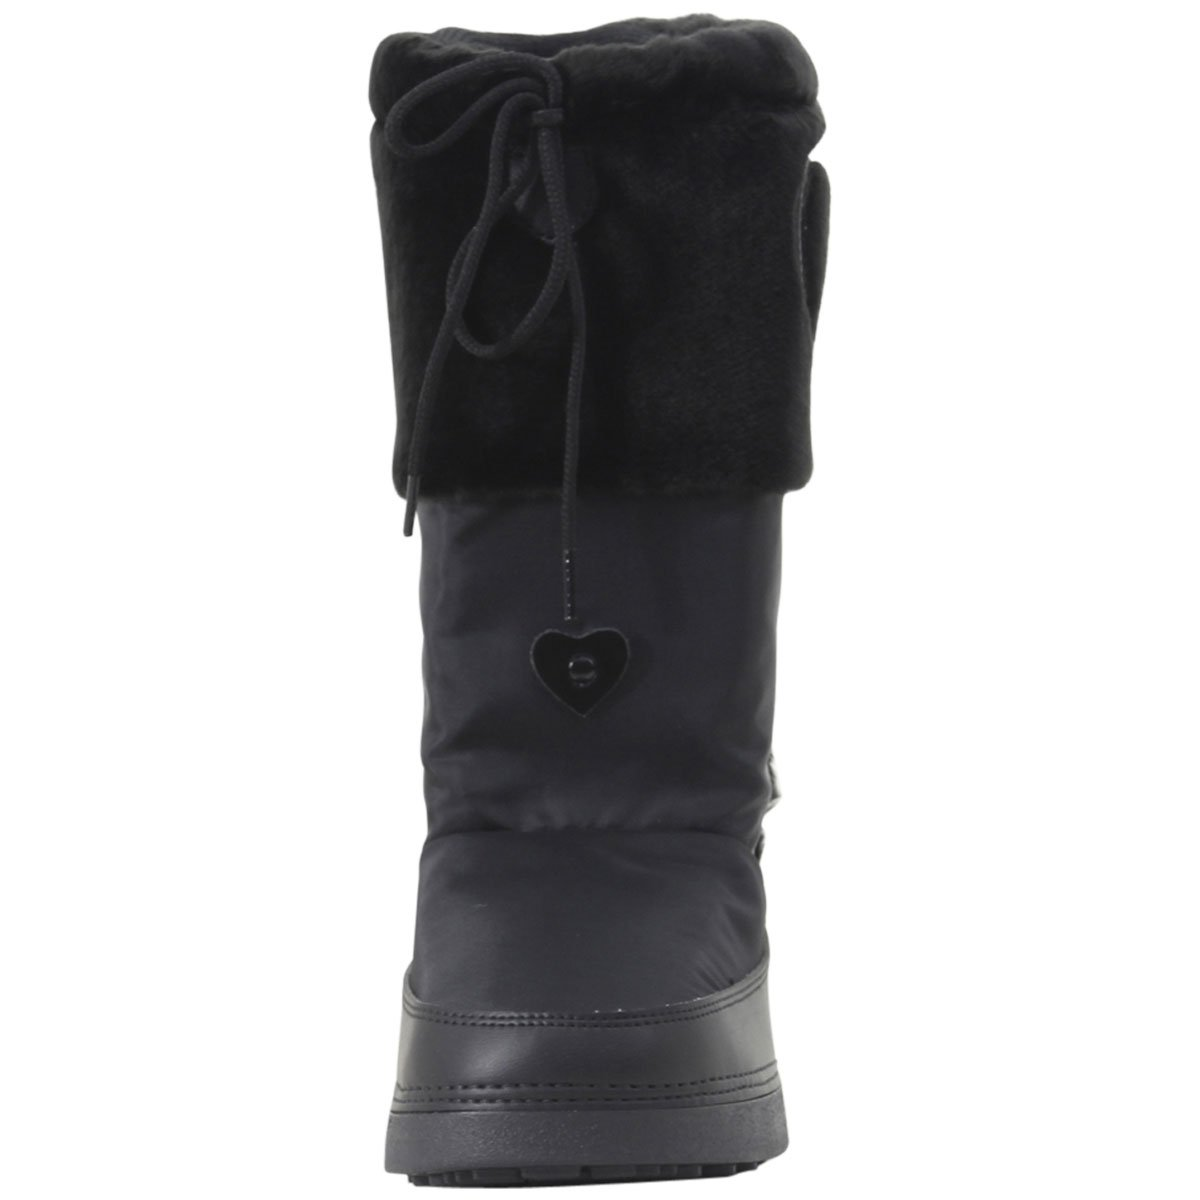 Love Moschino Women's Moon Boots Black 41 M EU by Love Moschino (Image #1)